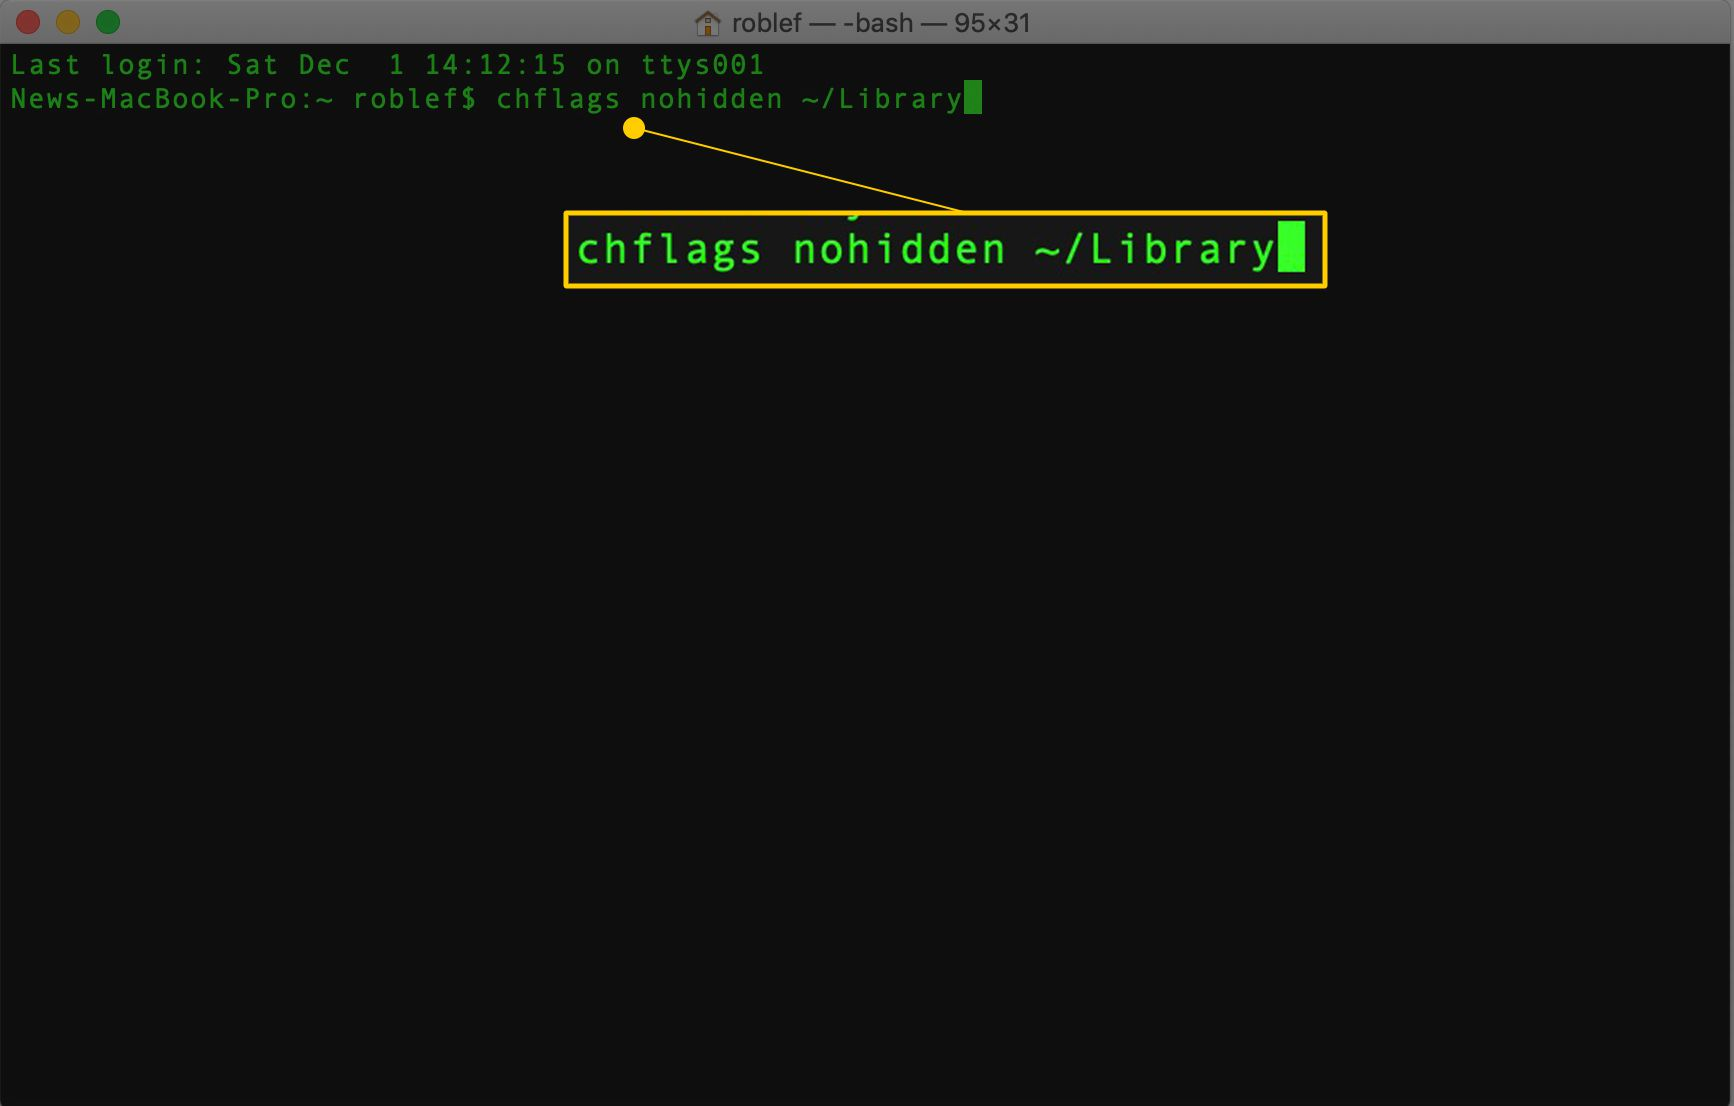 chflags nohidden ~/Library command in macOS Terminal app